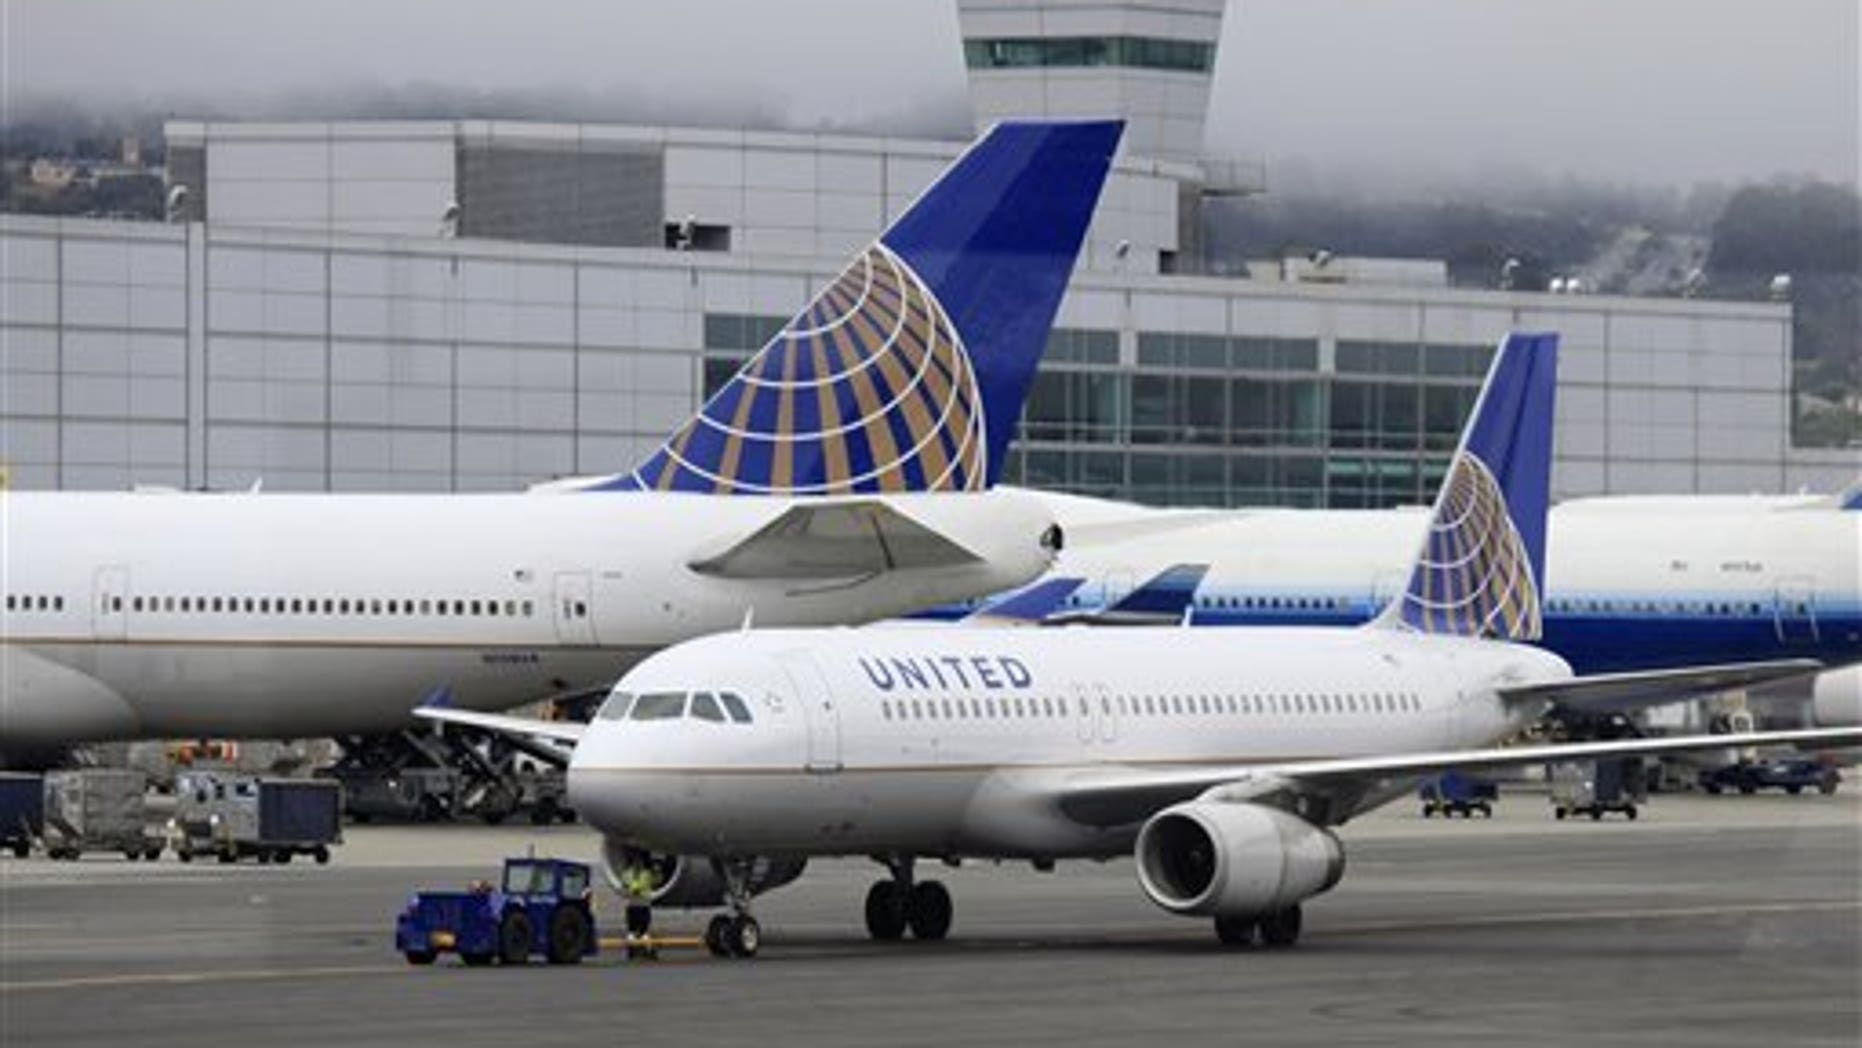 A family says they were forced to sit near vomit during a recent flight home.